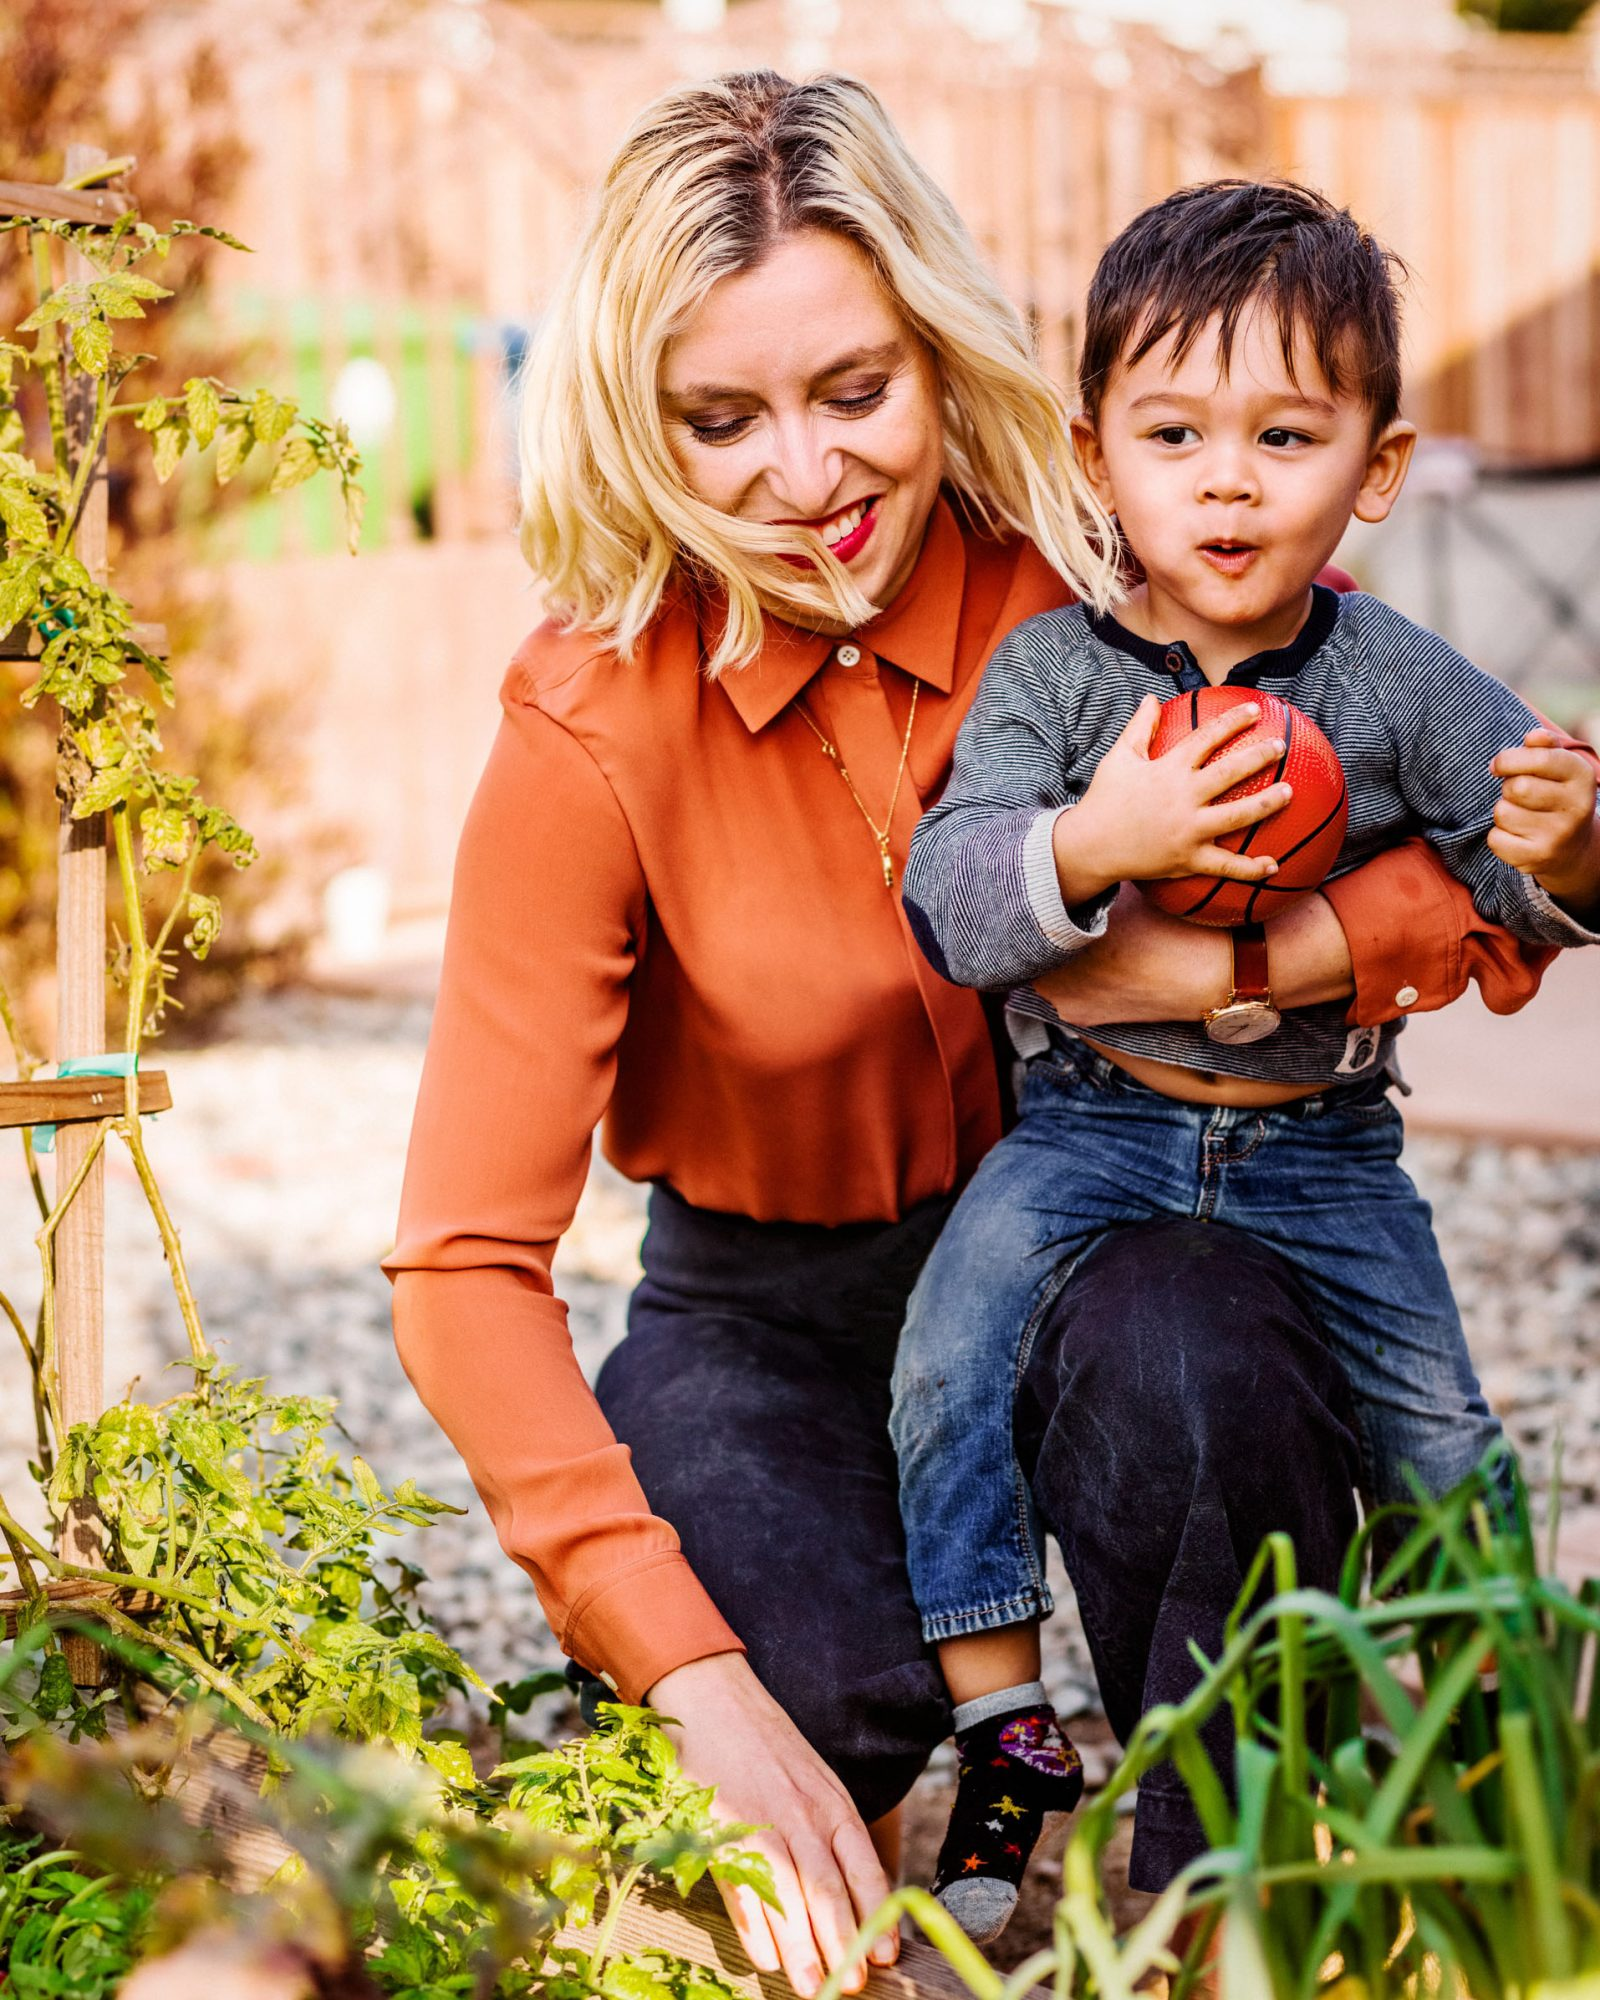 mother and son picking herbs in the garden